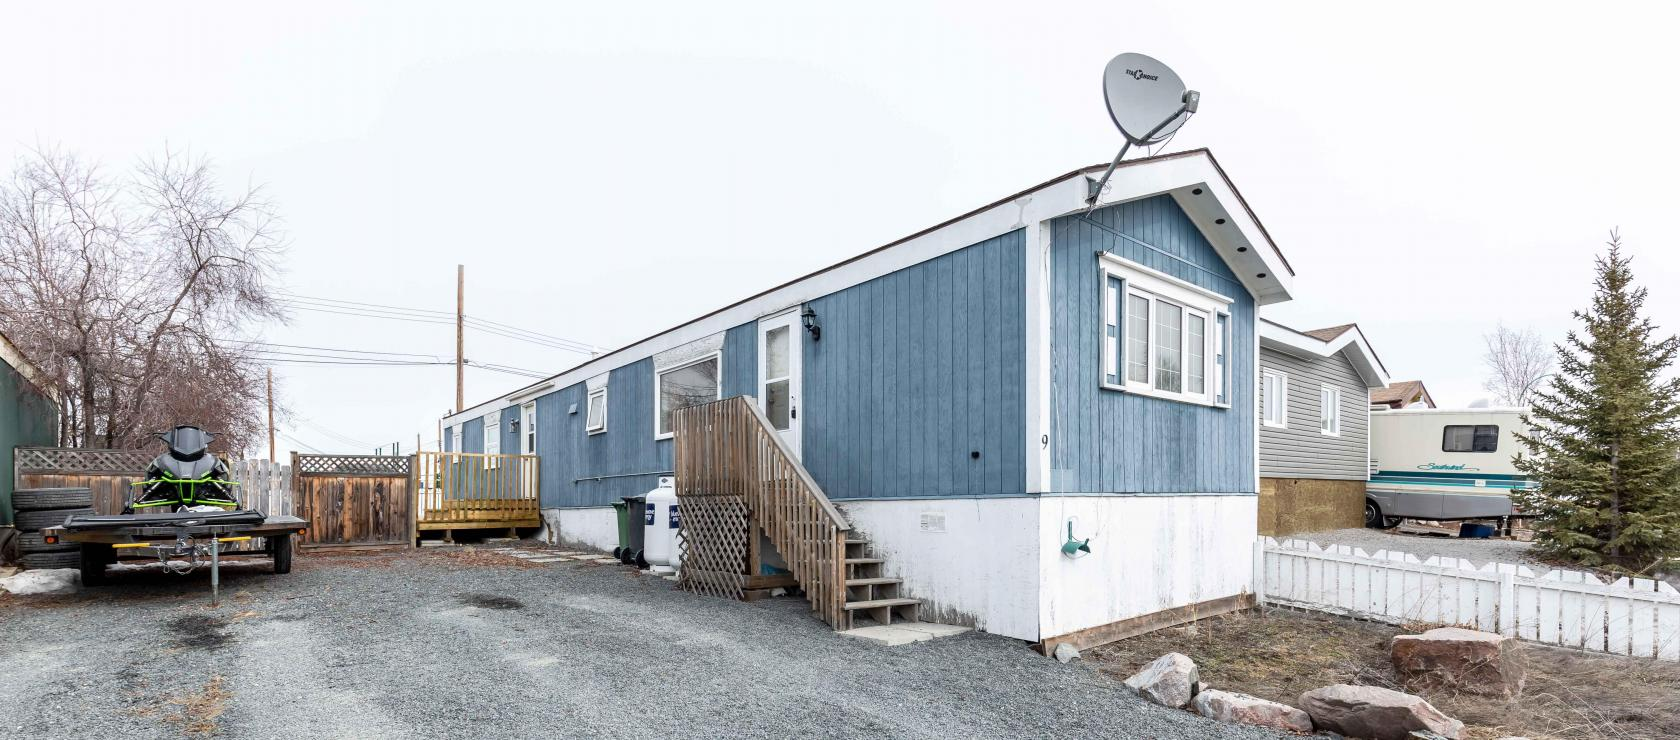 9 Hordal Road, Frame Lake, Yellowknife 2